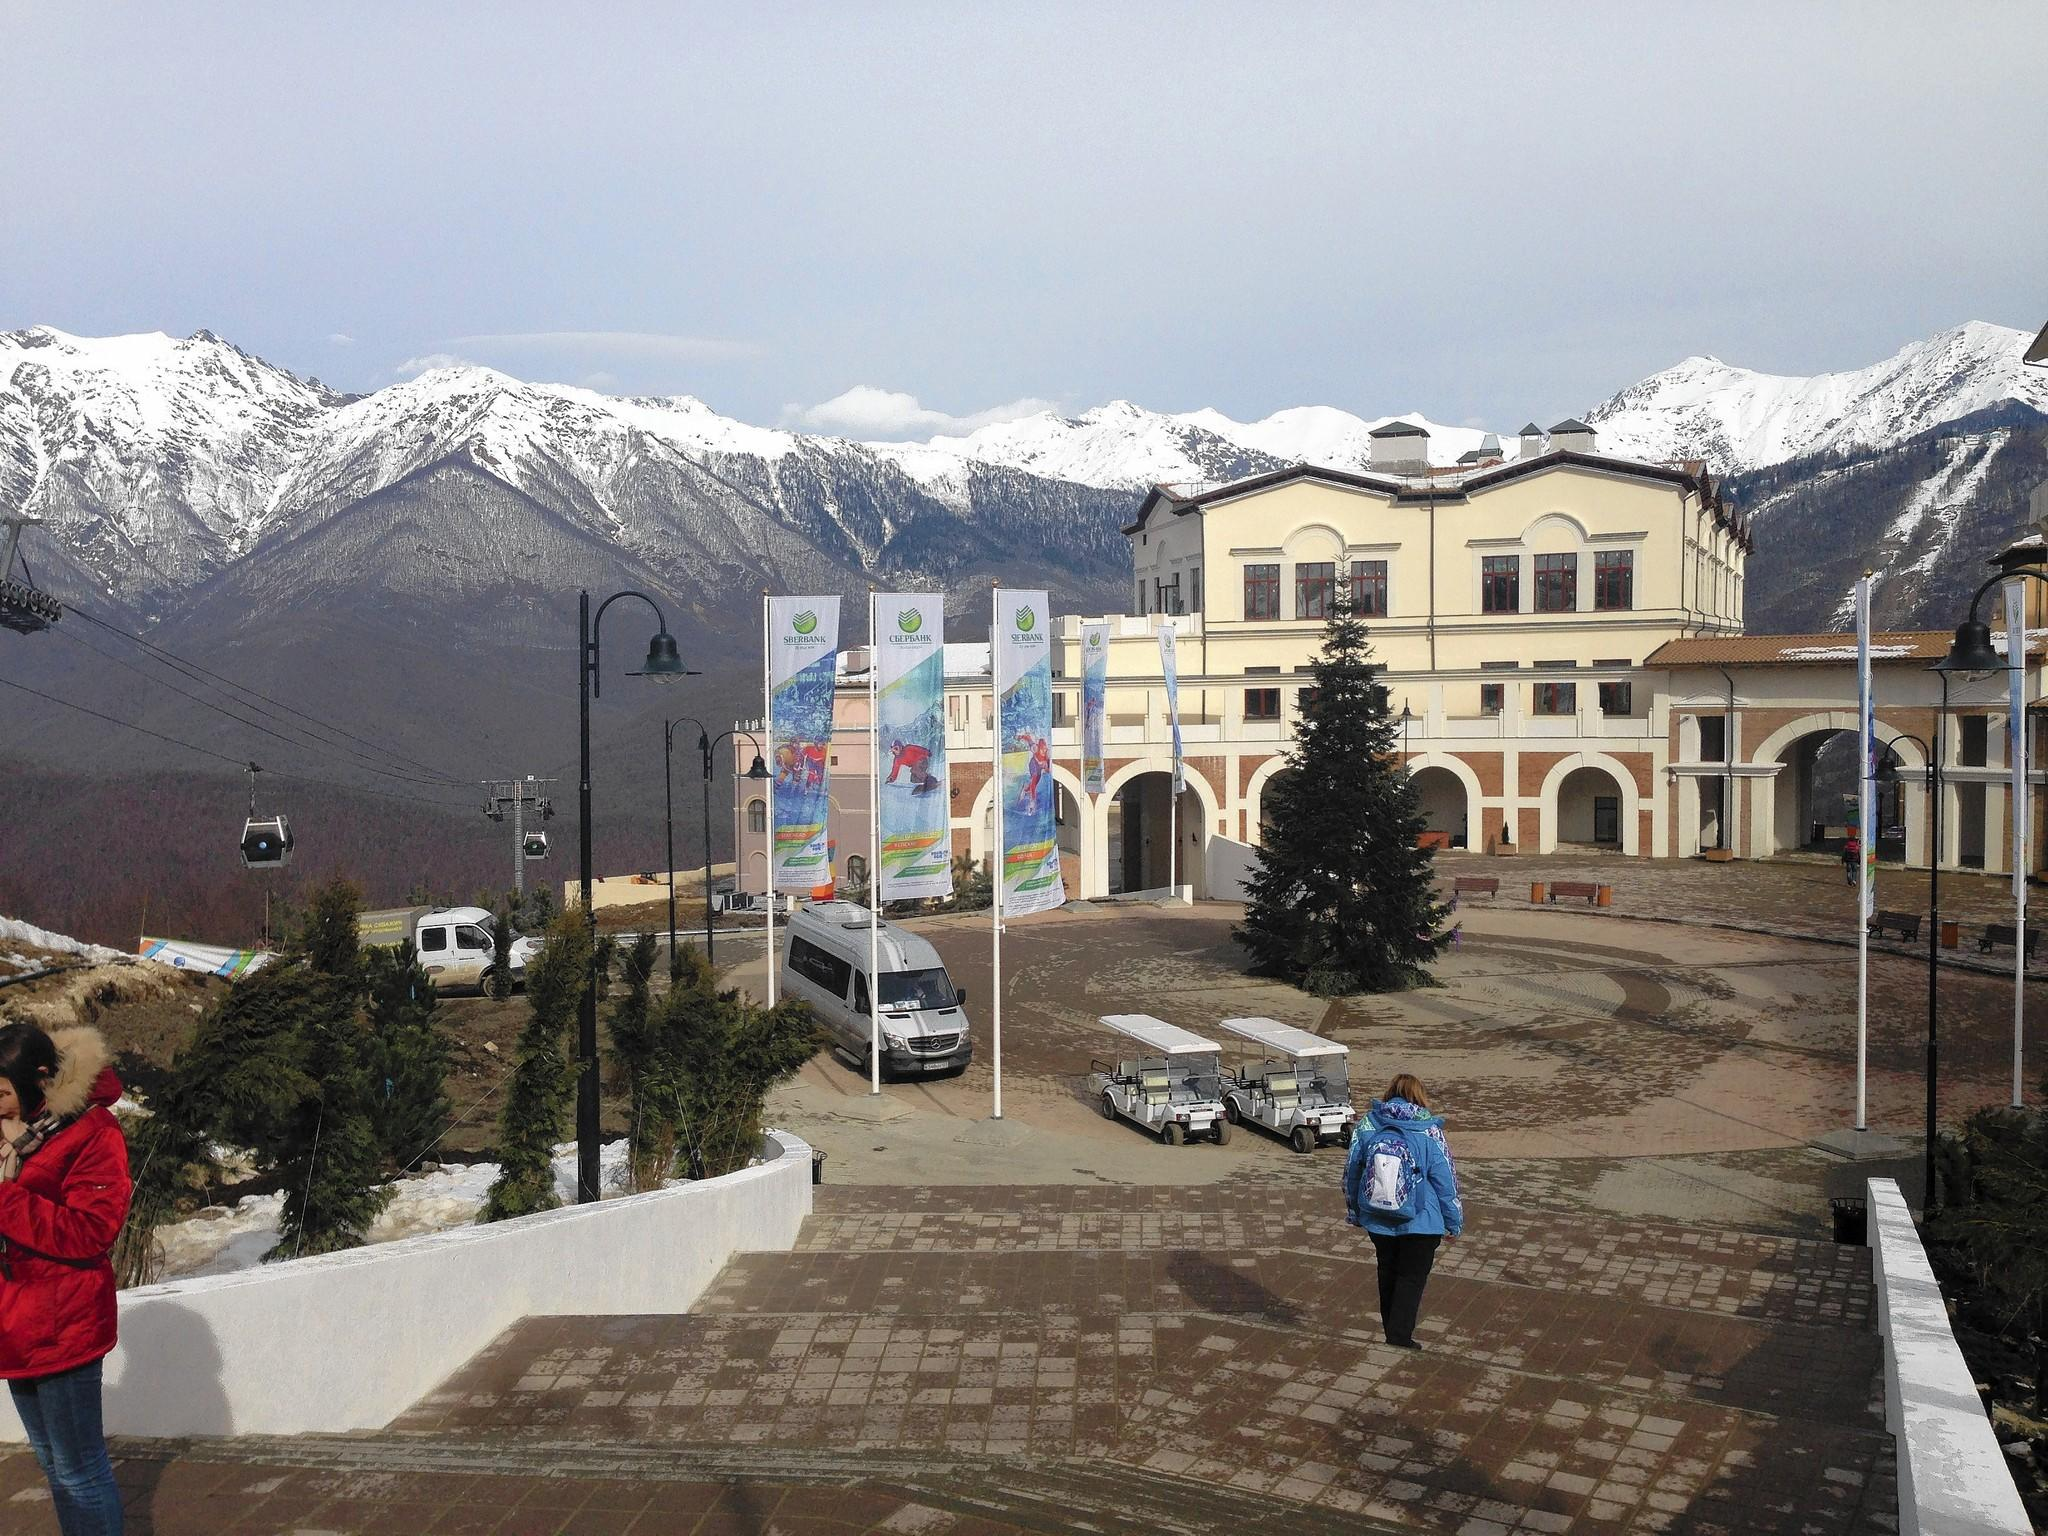 A public square overlooking Gorky Gorod in Krasnaya Polyana near Sochi, Russia, is intended to be a place where Olympic revelers can dance and listen to music, but it has been largely empty since the Games began.